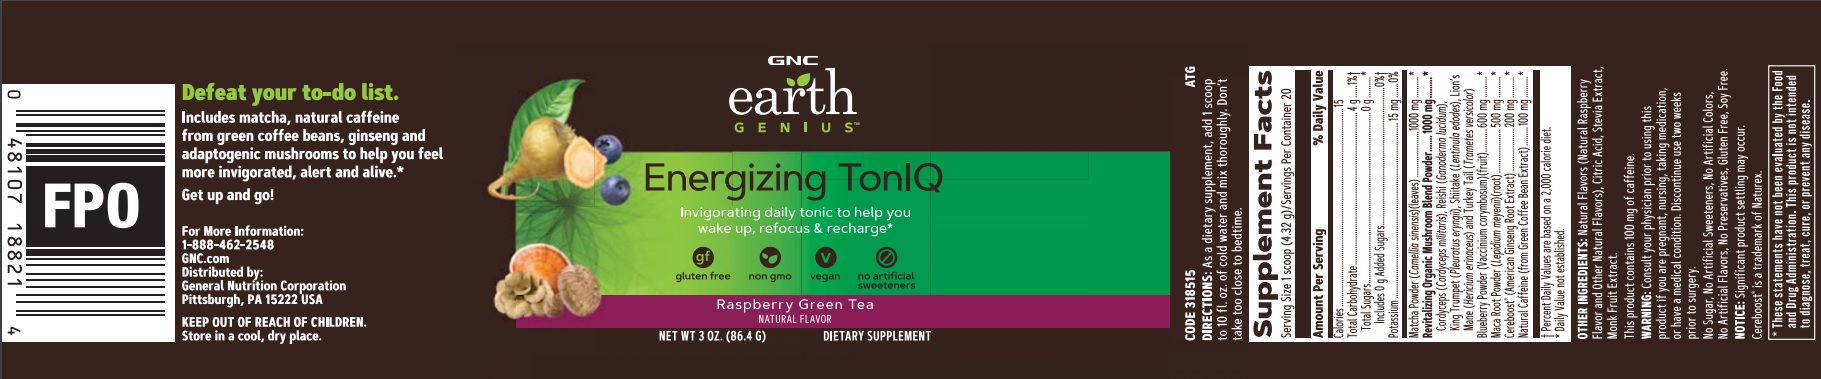 Gnc Earth Genius Energizing Toniq Review Recharge And